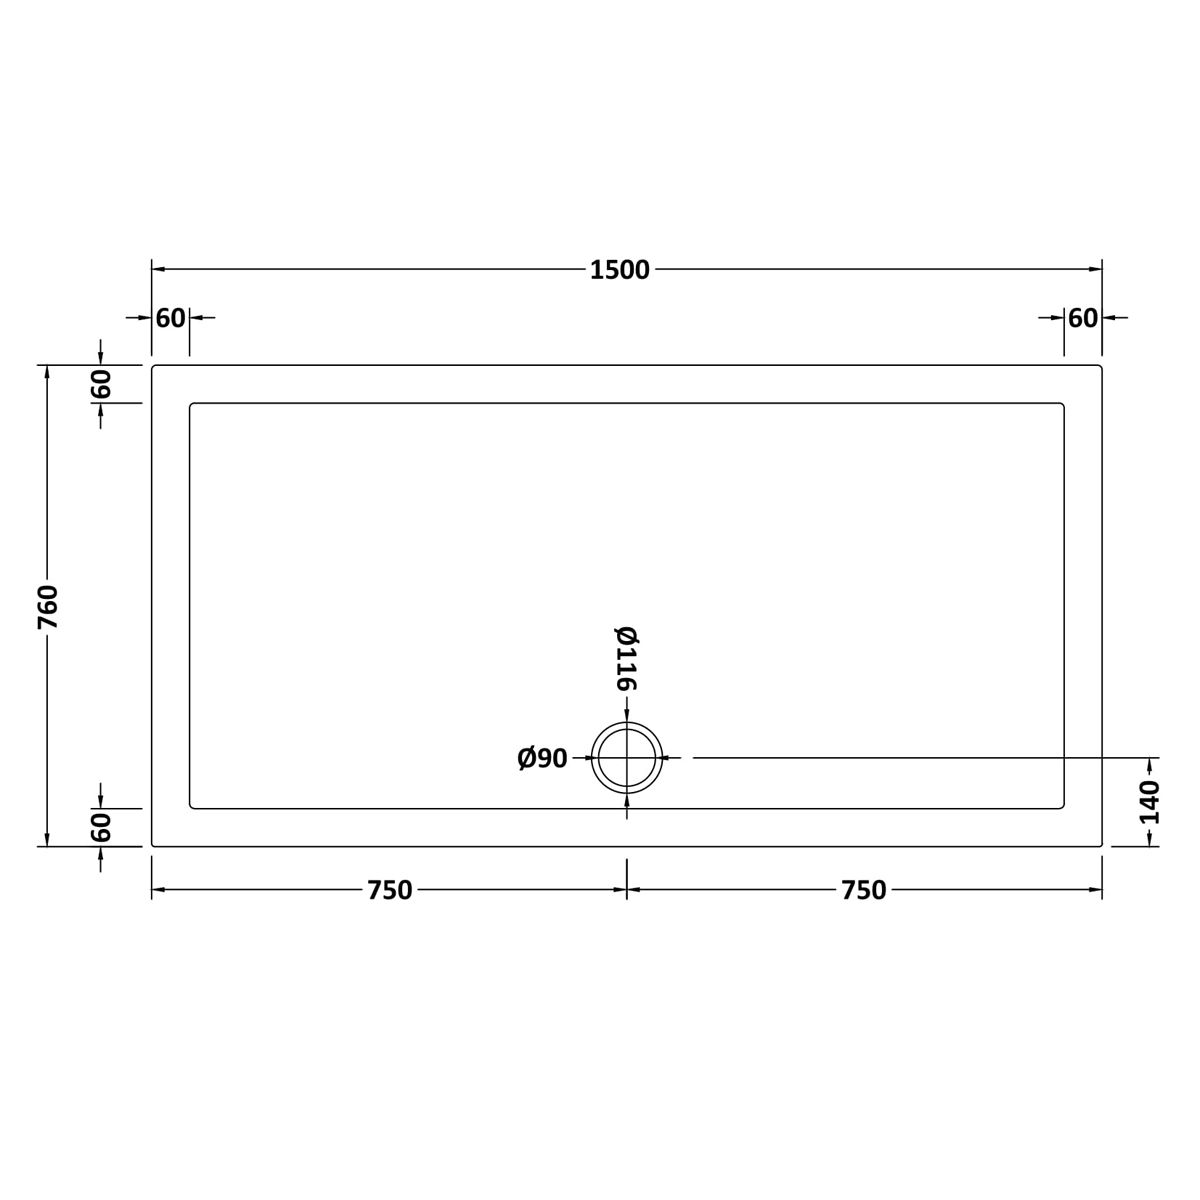 1500 x 760 Shower Tray Slate Grey Rectangular Low Profile by Pearlstone Dimensions